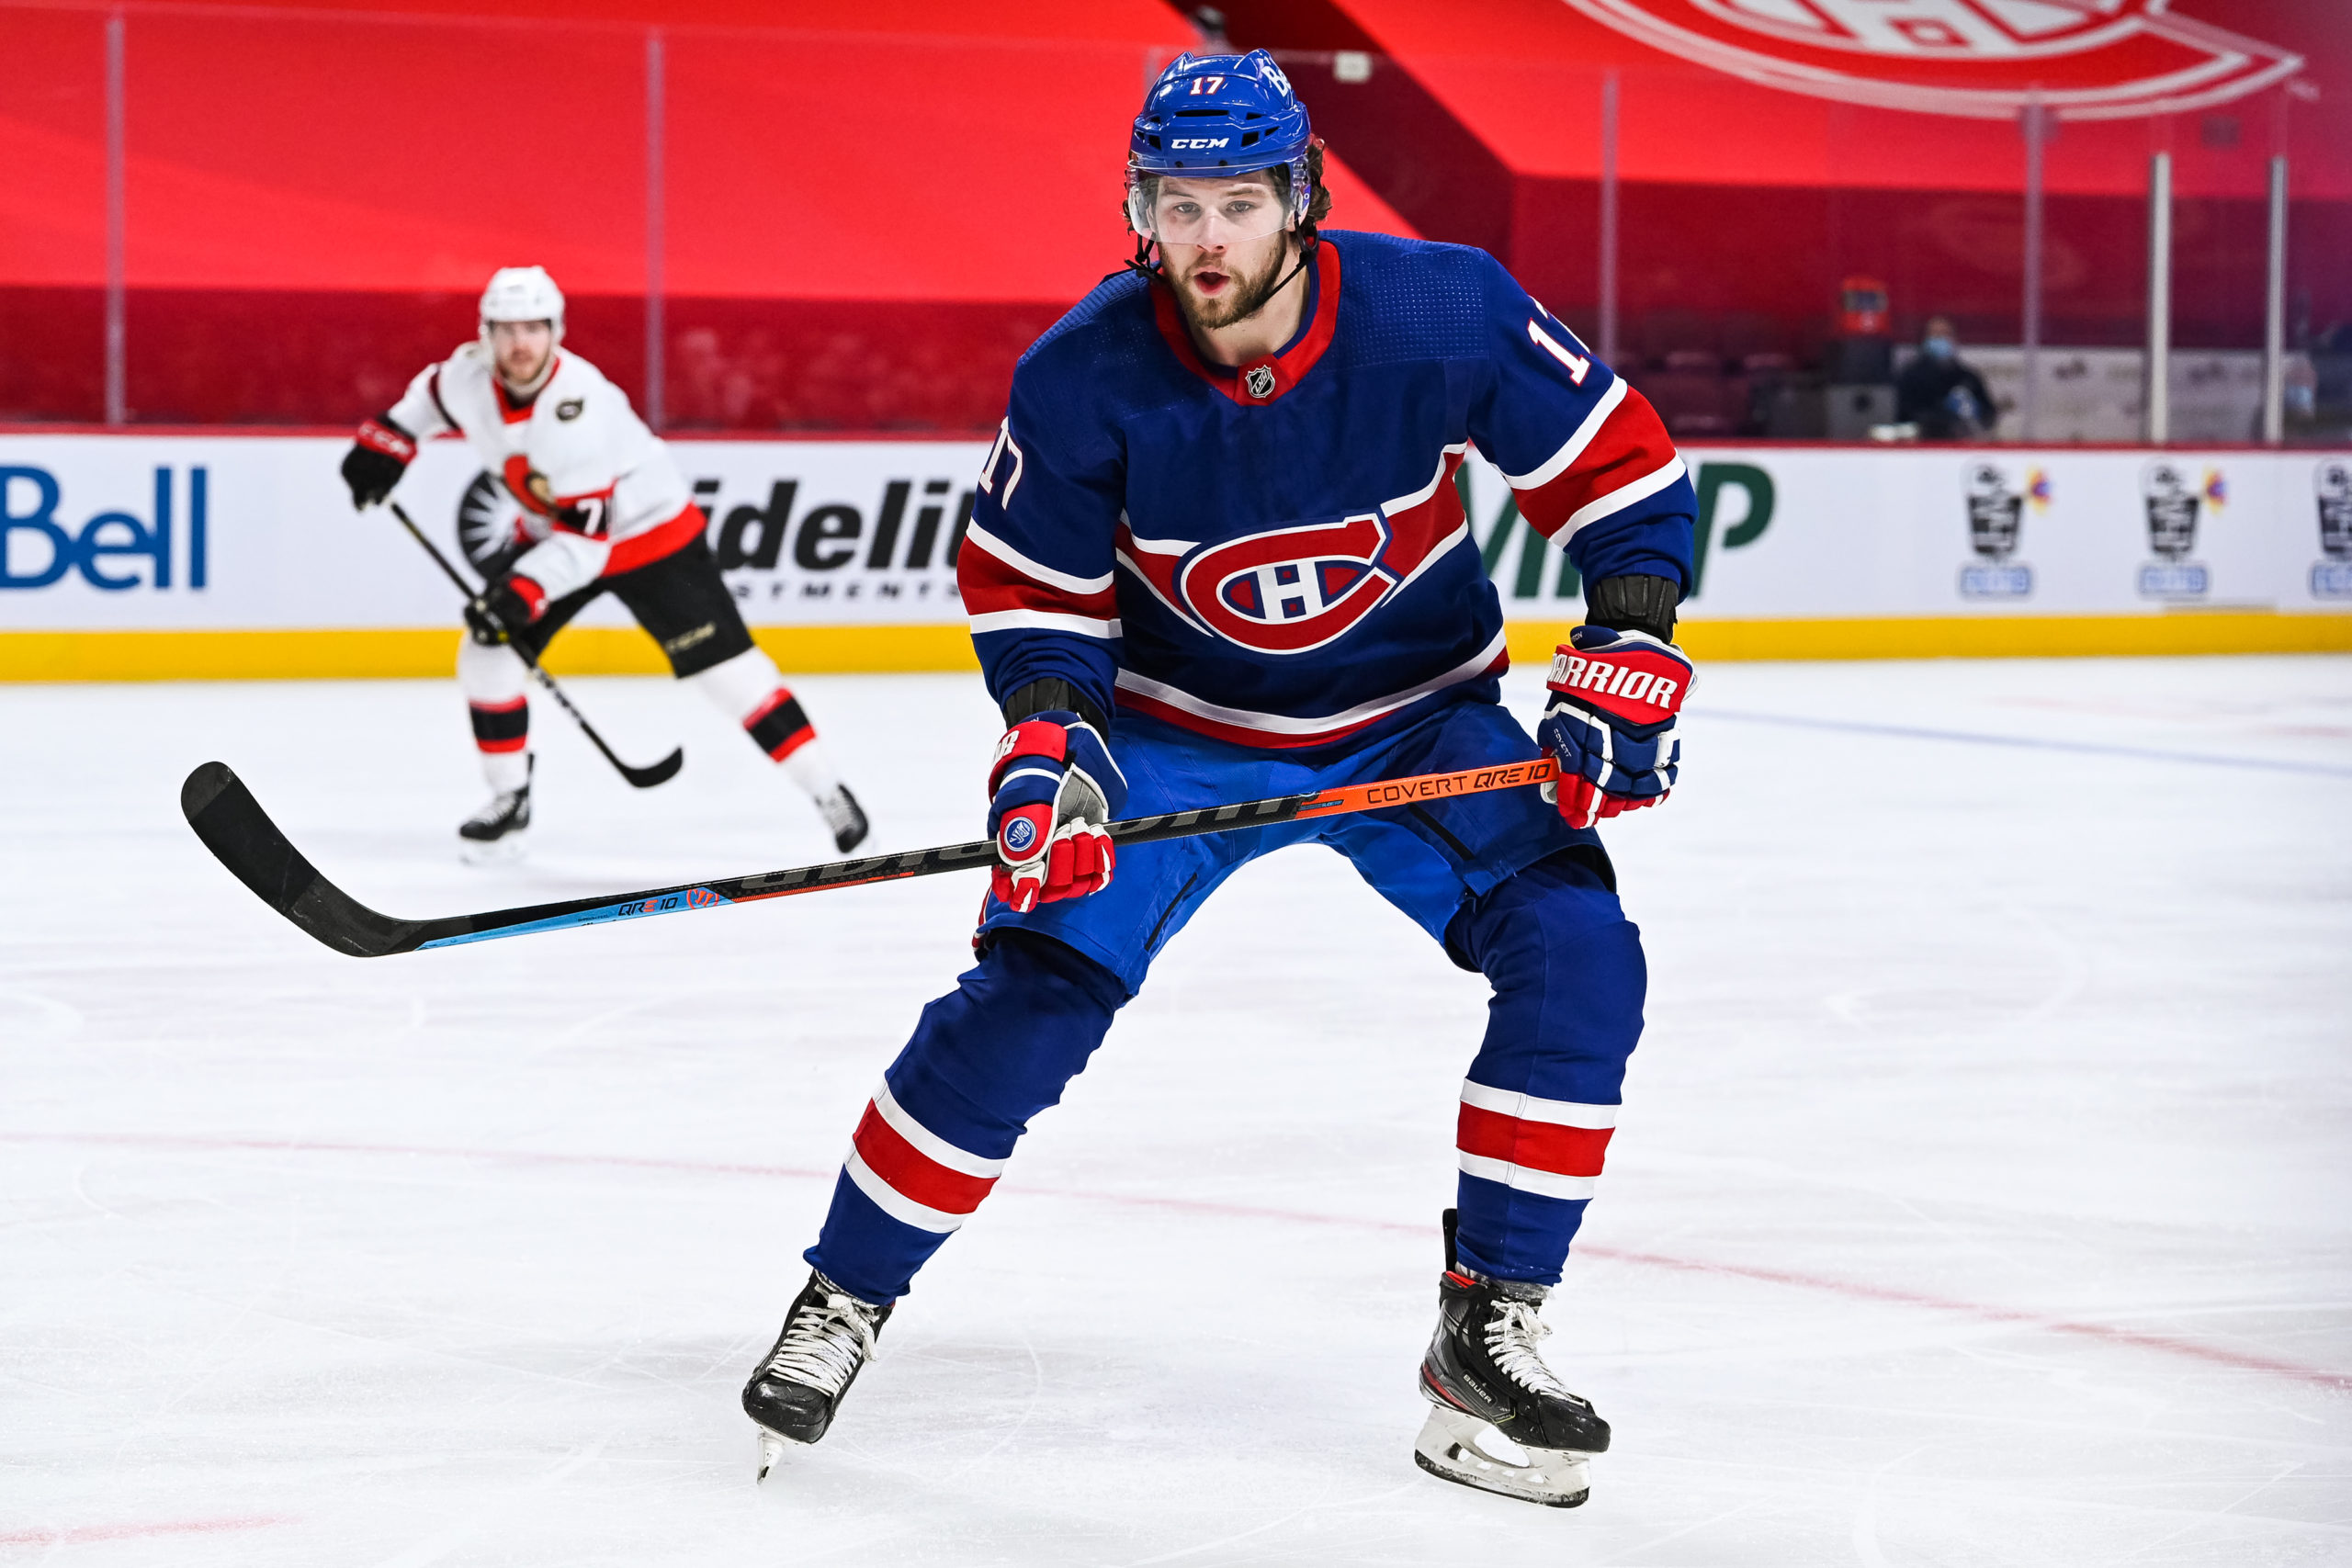 NHL athlete Josh Anderson playing hockey for the Montreal Canadiens